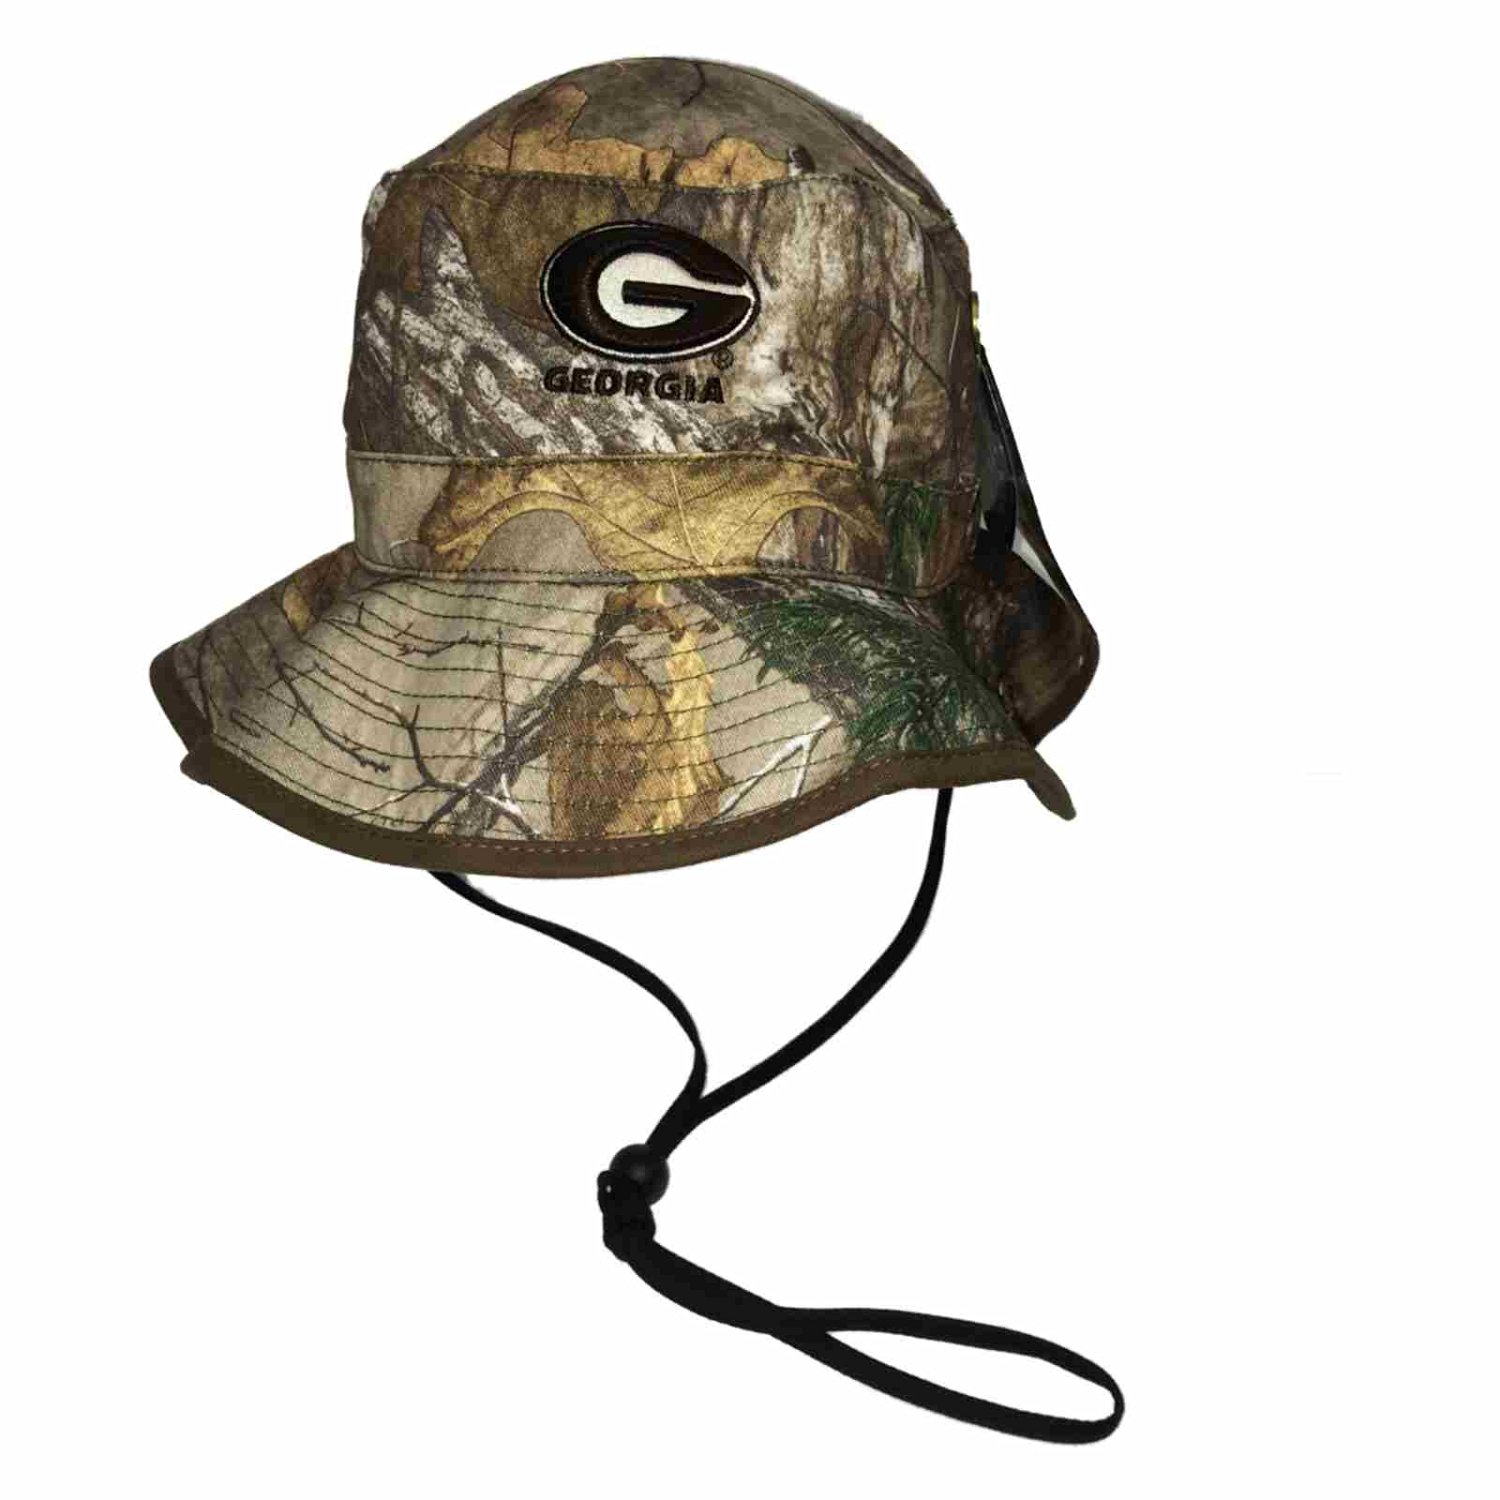 Georgia Bulldogs TOW Realtree Camo Bucket Hat Cap with Adjustable Chin Strap 82432c0b69a